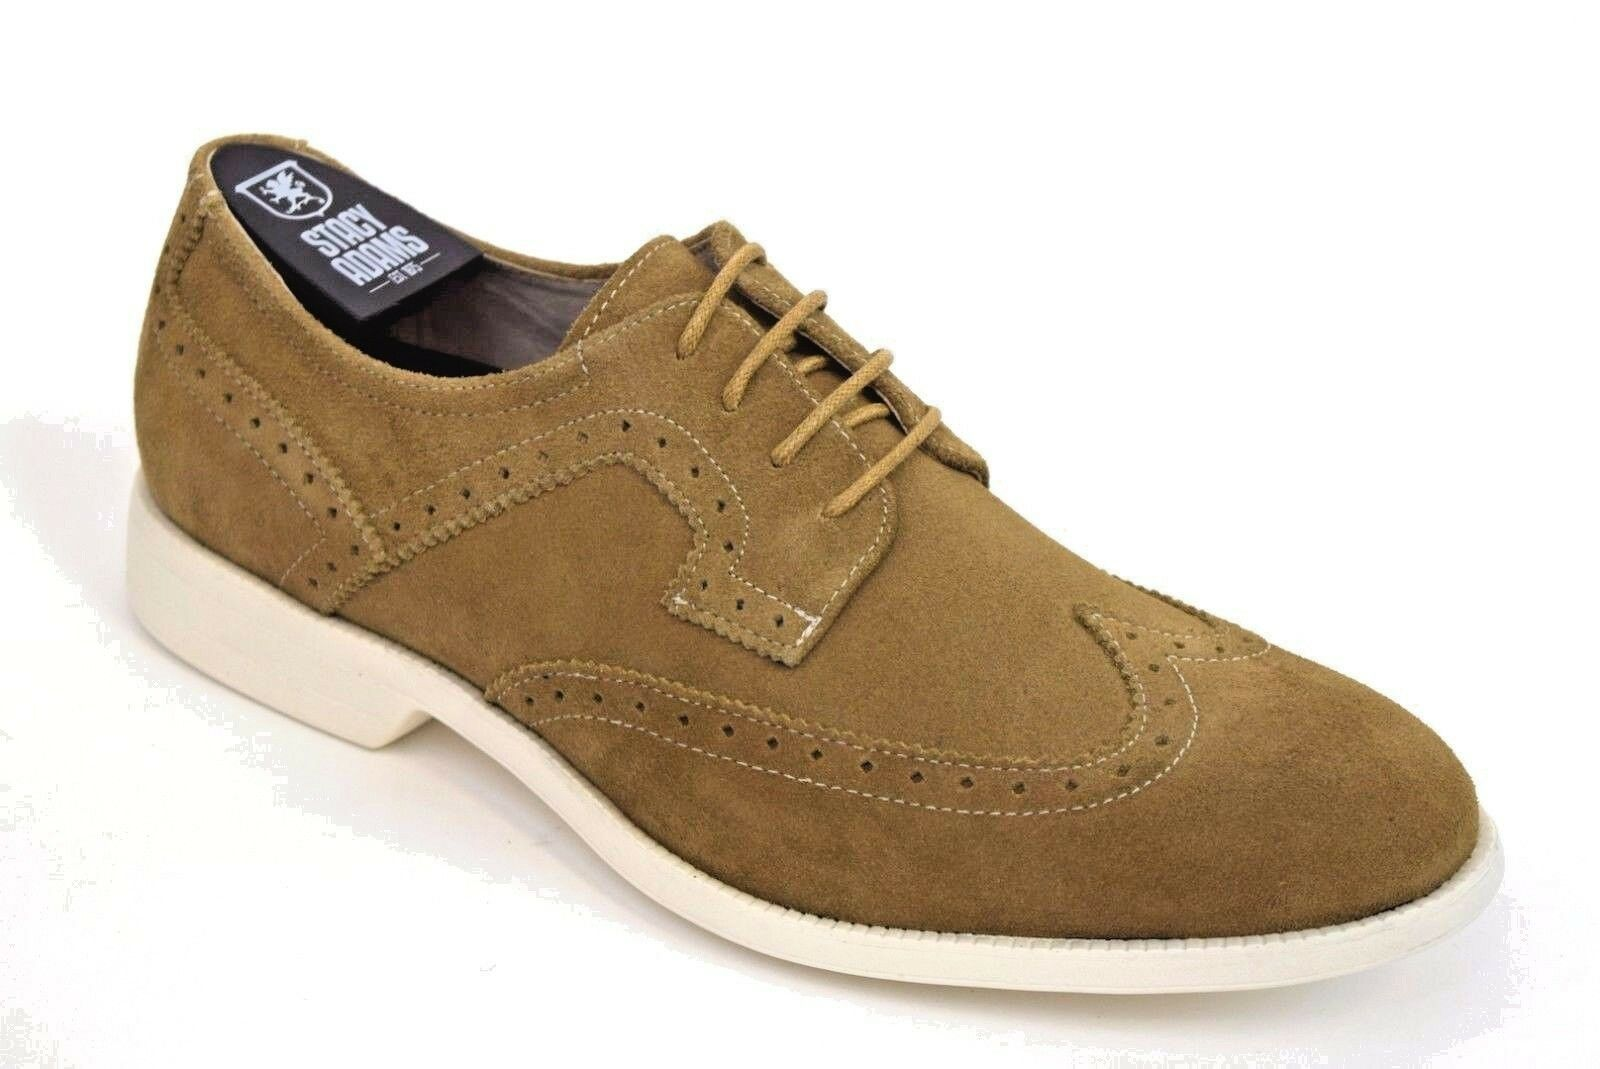 Mens Stacy Adams Dress Casual shoes WESTPORT 25015 Sand Wing Tip Leather Suede